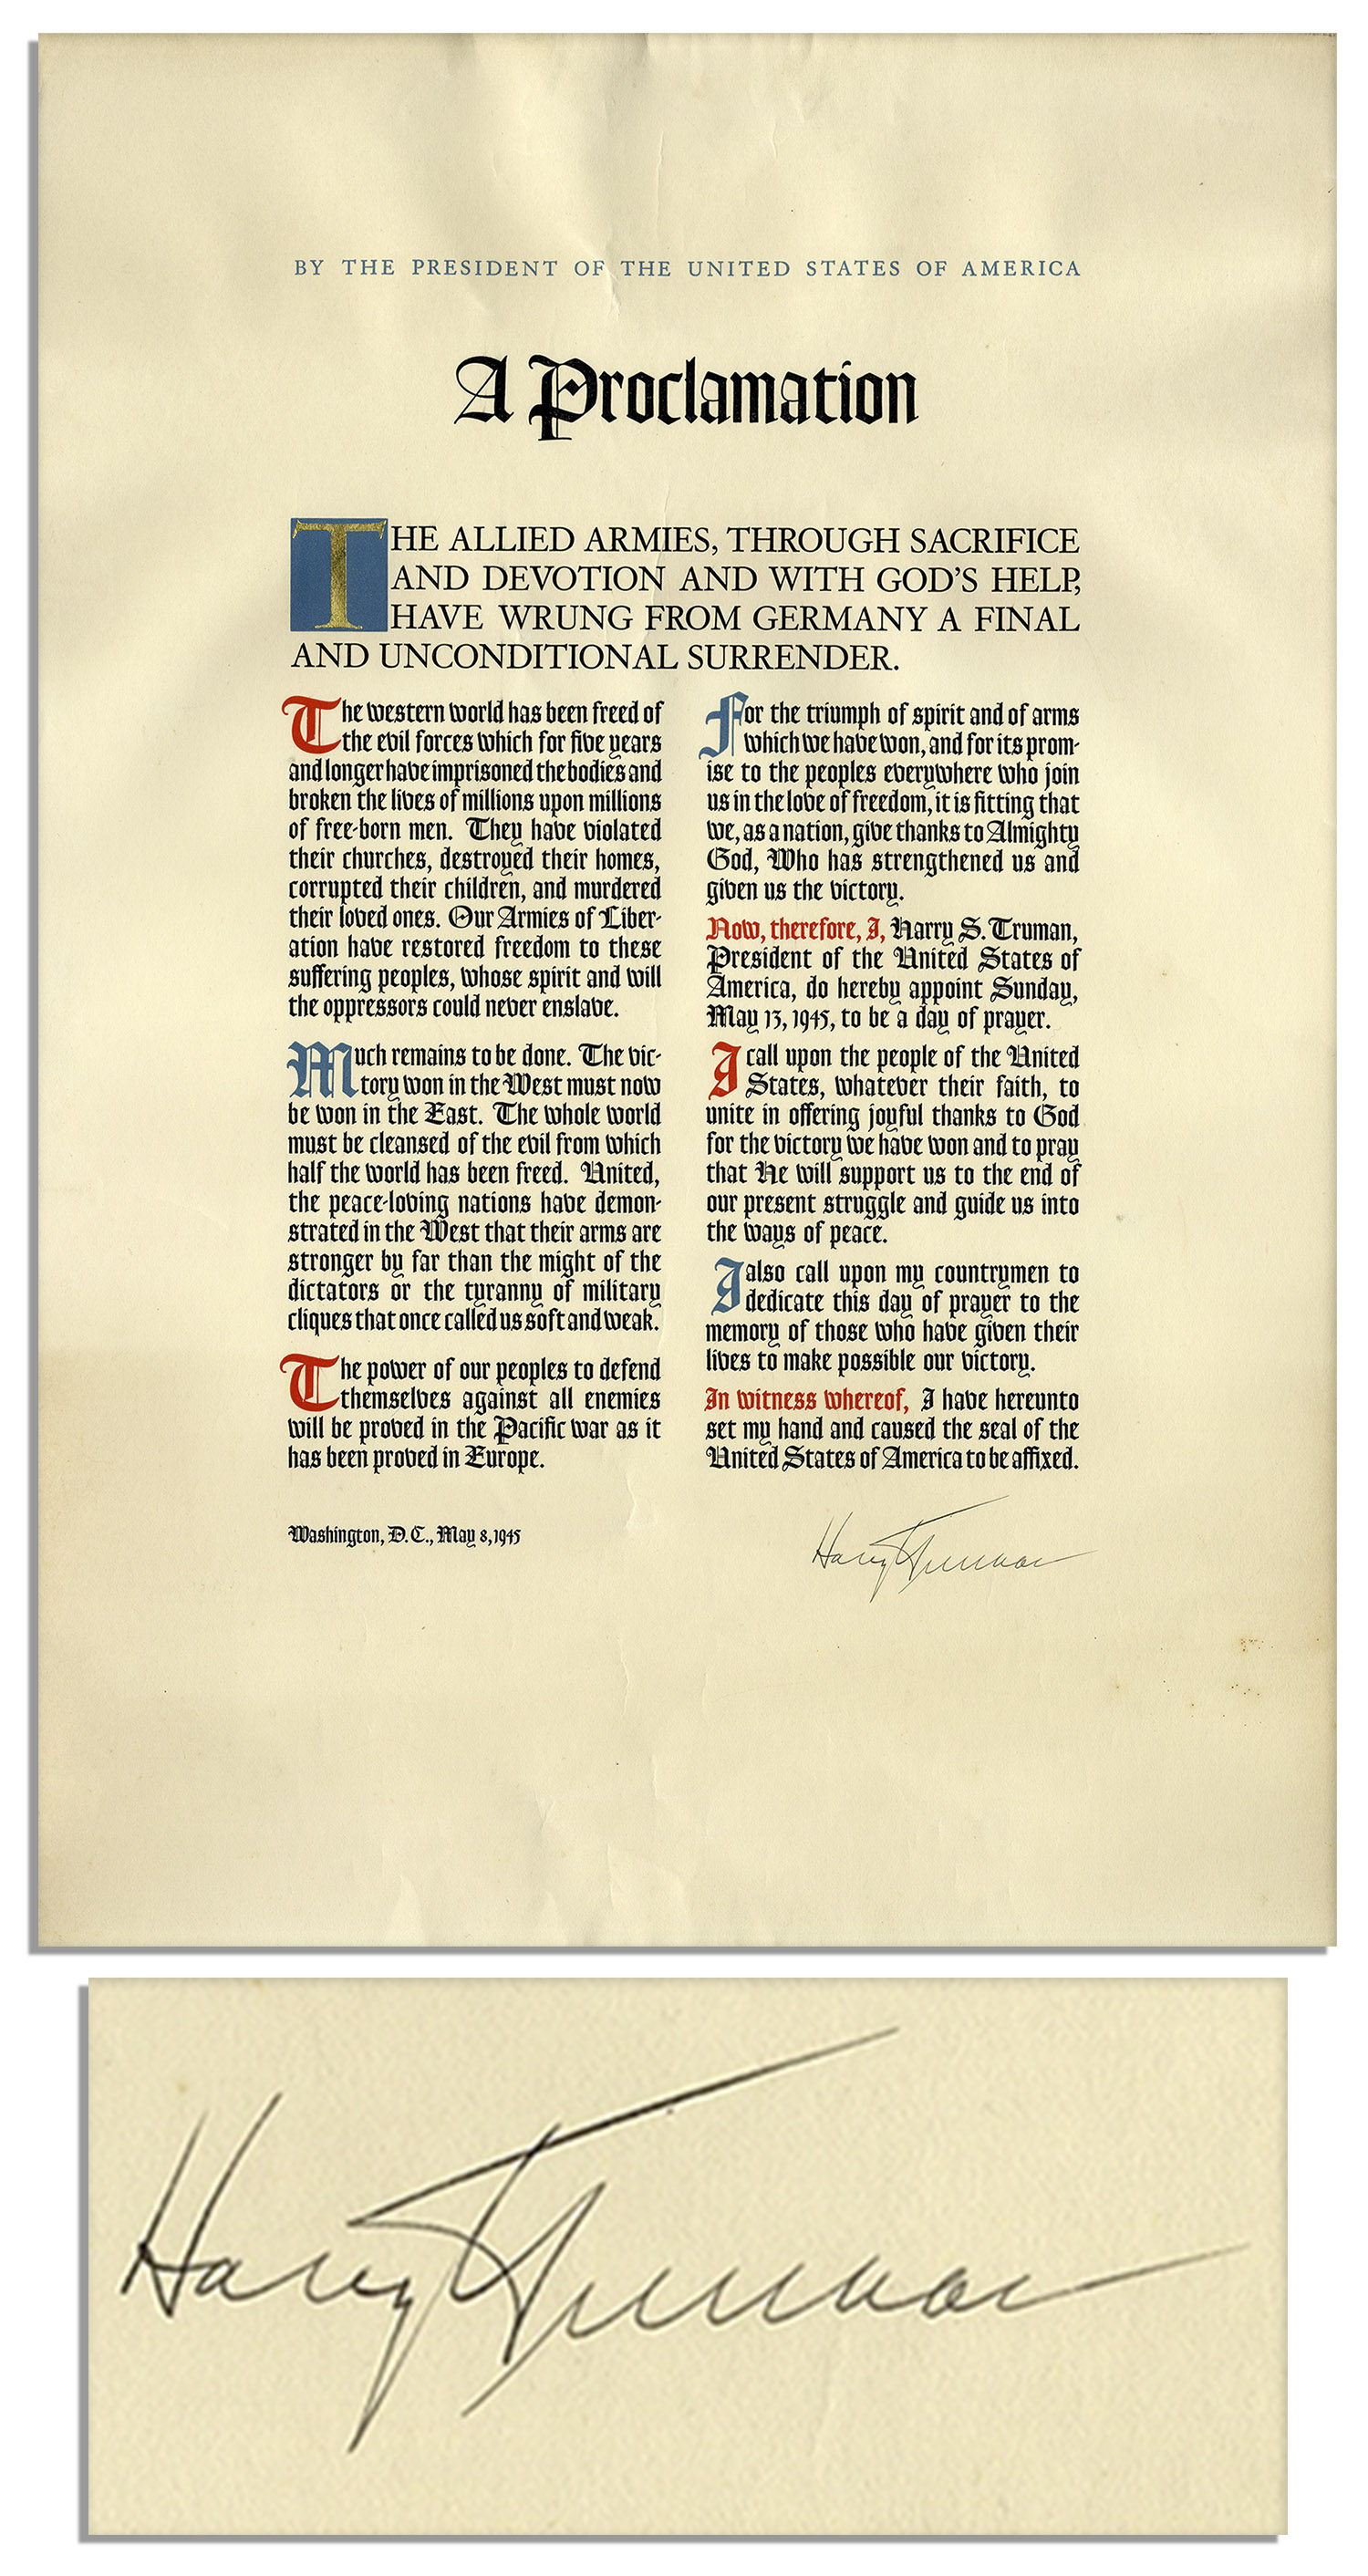 Harry Truman Memorabilia Exceptionally Scarce Harry Truman WWII Victory Proclamation Signed as President -- Gifted to White House Staff in 1945 -- in Seldom-Encountered Near Fine Condition